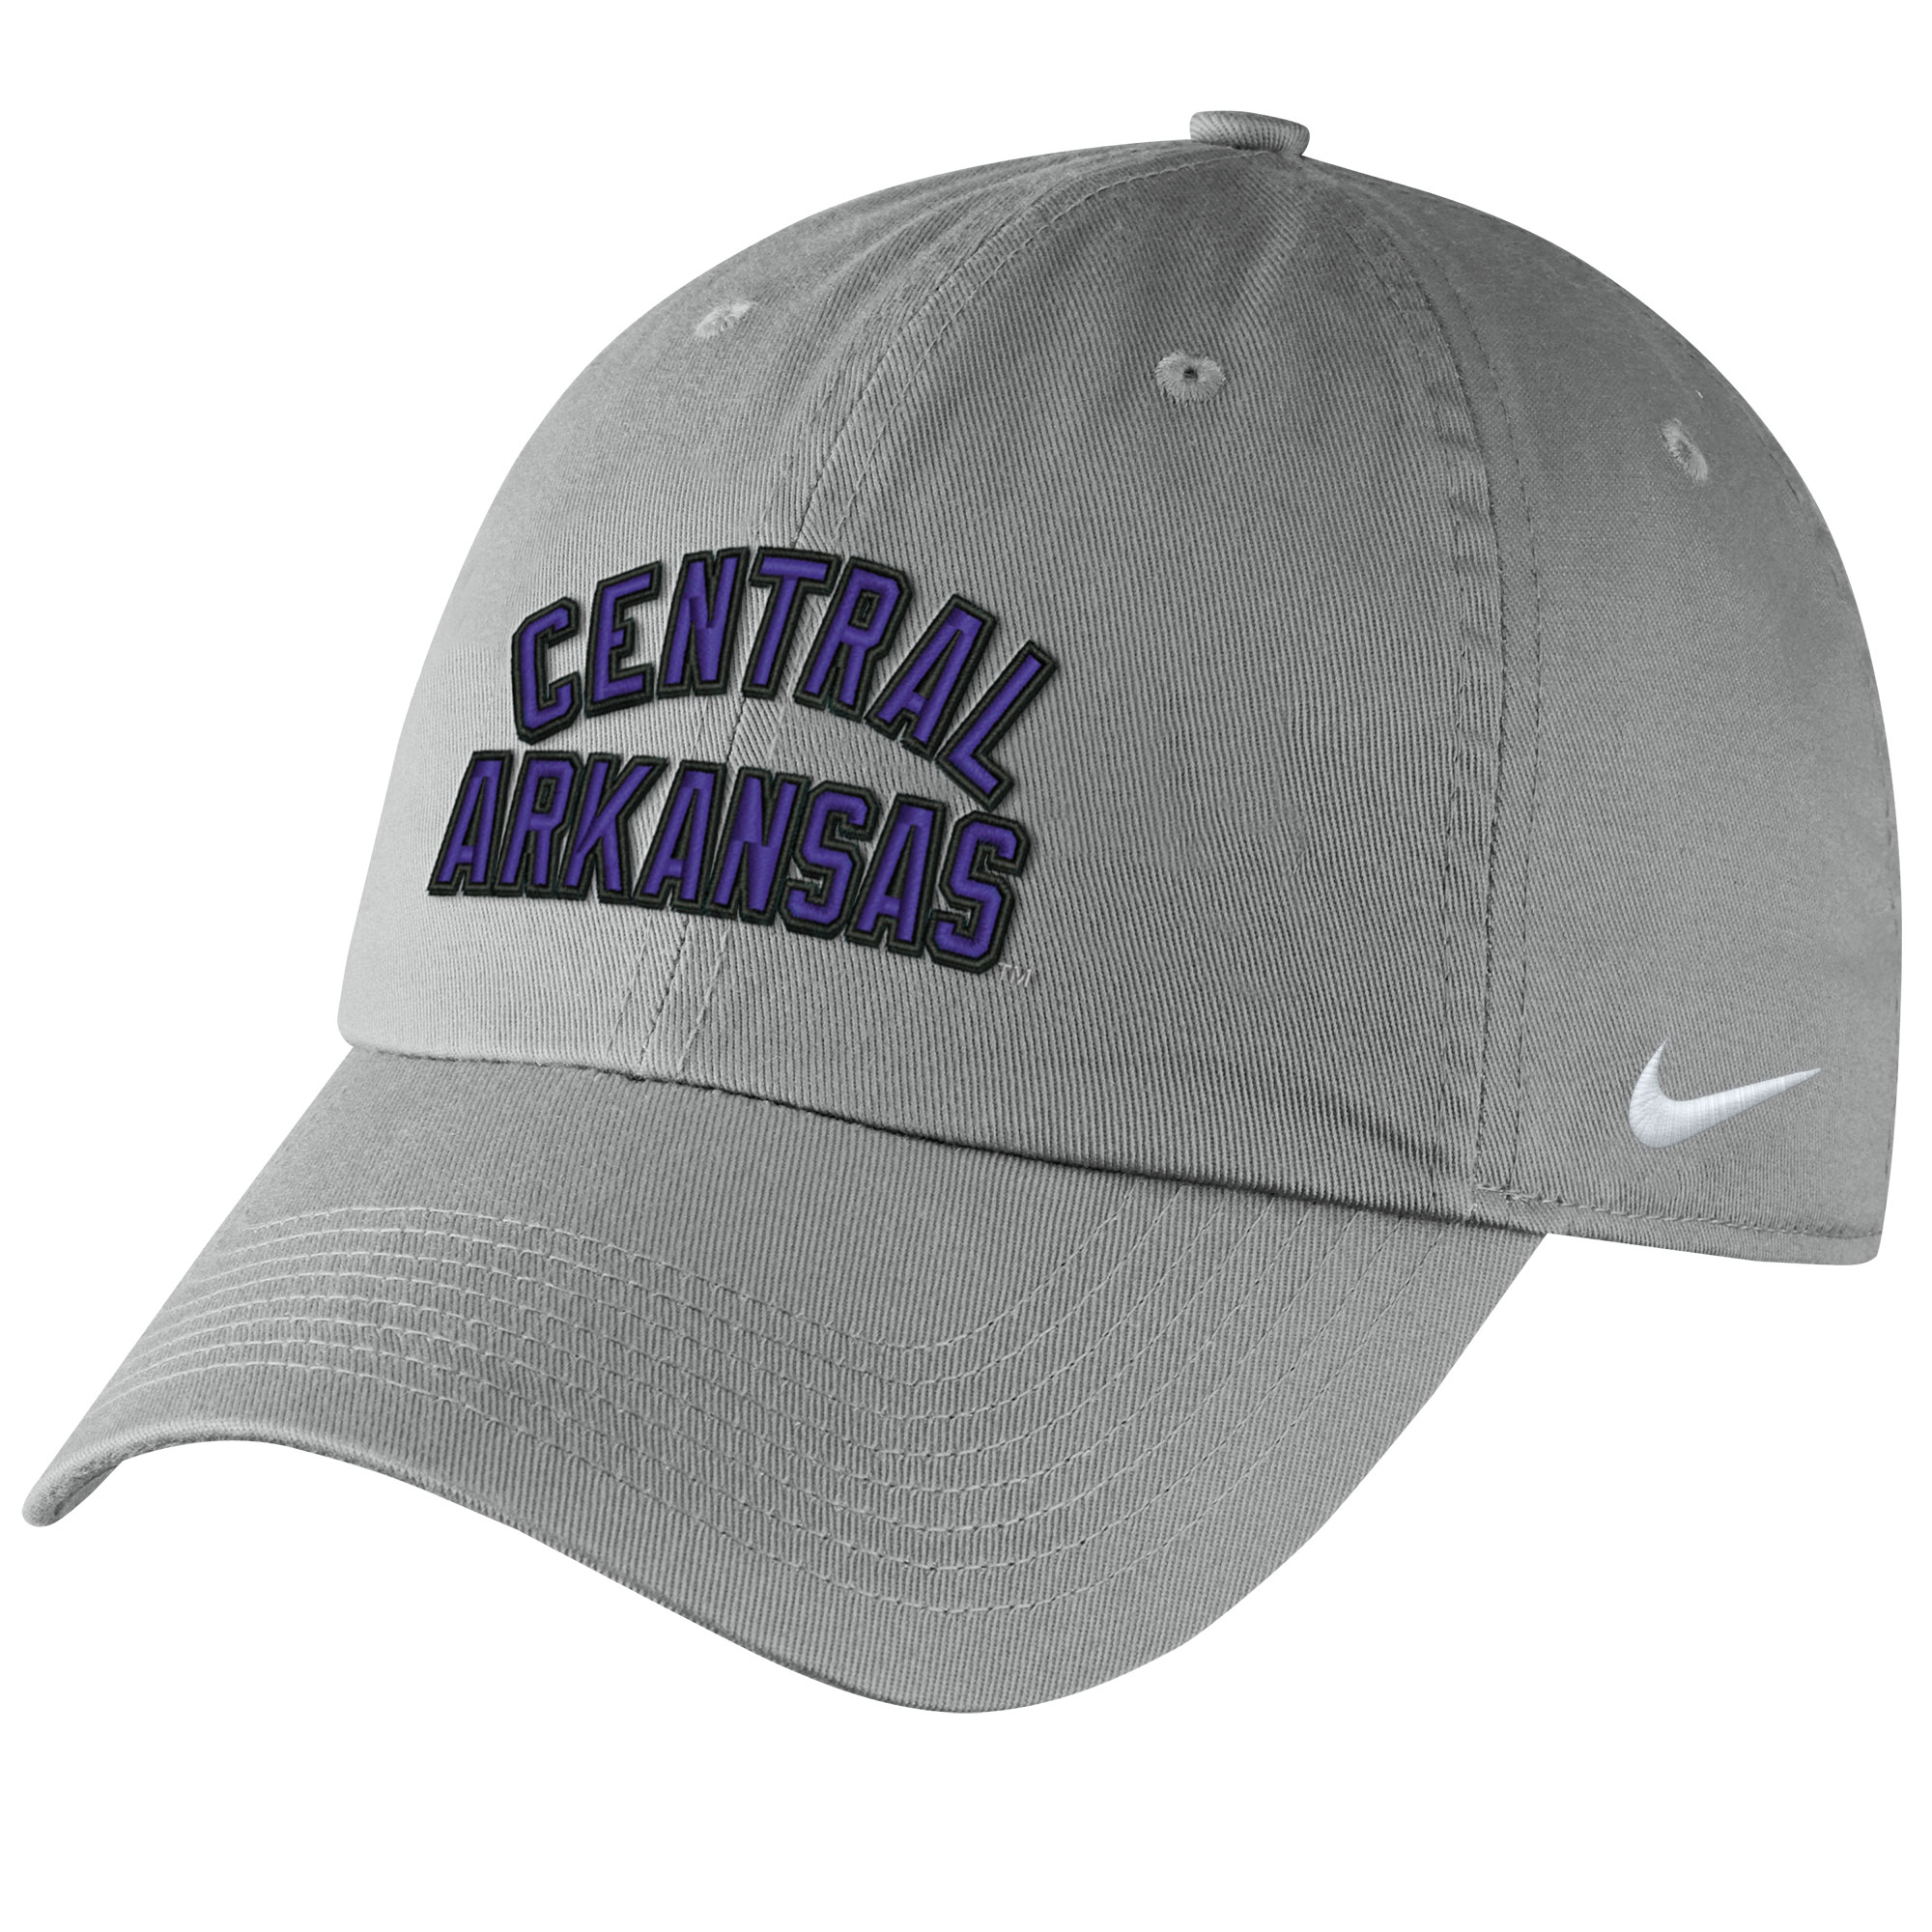 Central Arkansas Authentic Cap